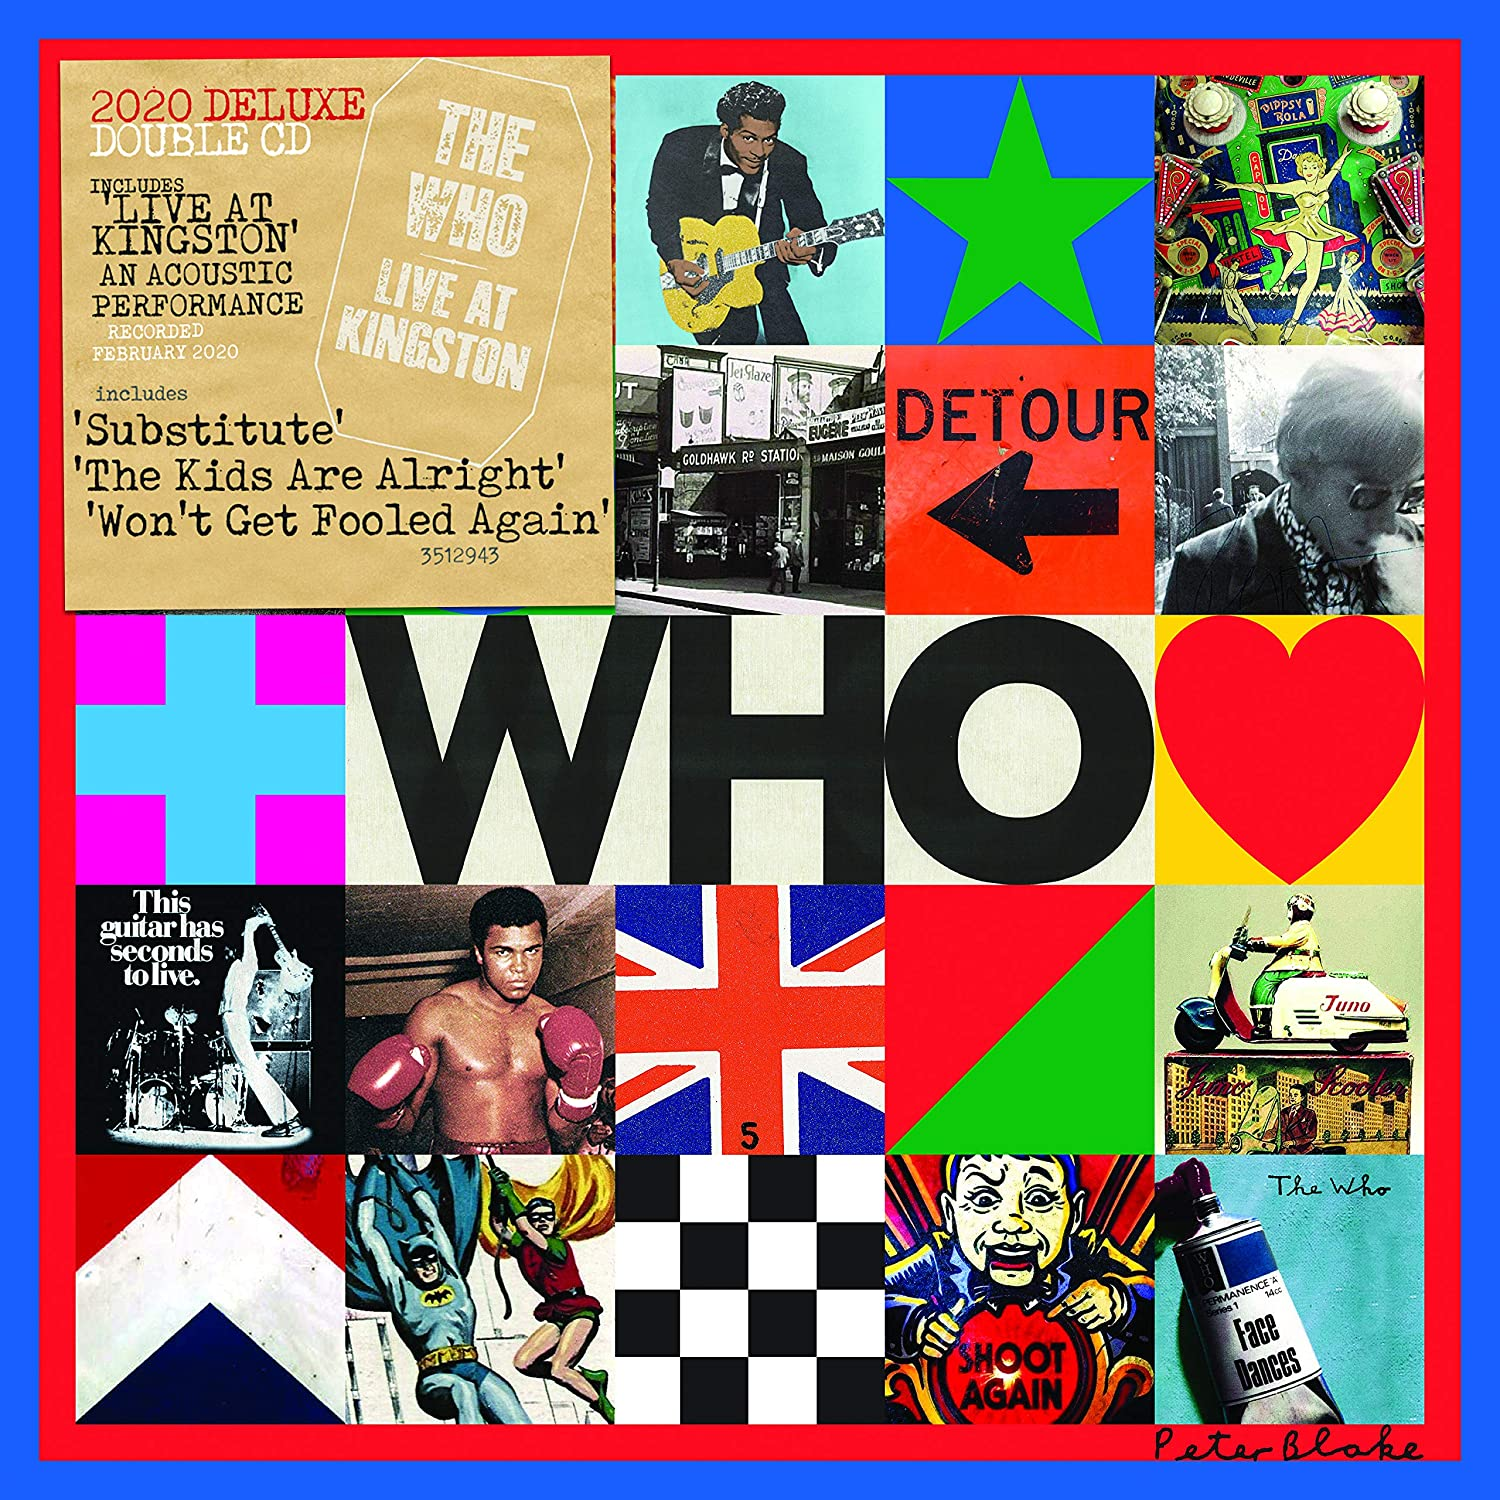 Who - Who, The (2019) (2020 Deluxe Ed. 2CD) - CD - New